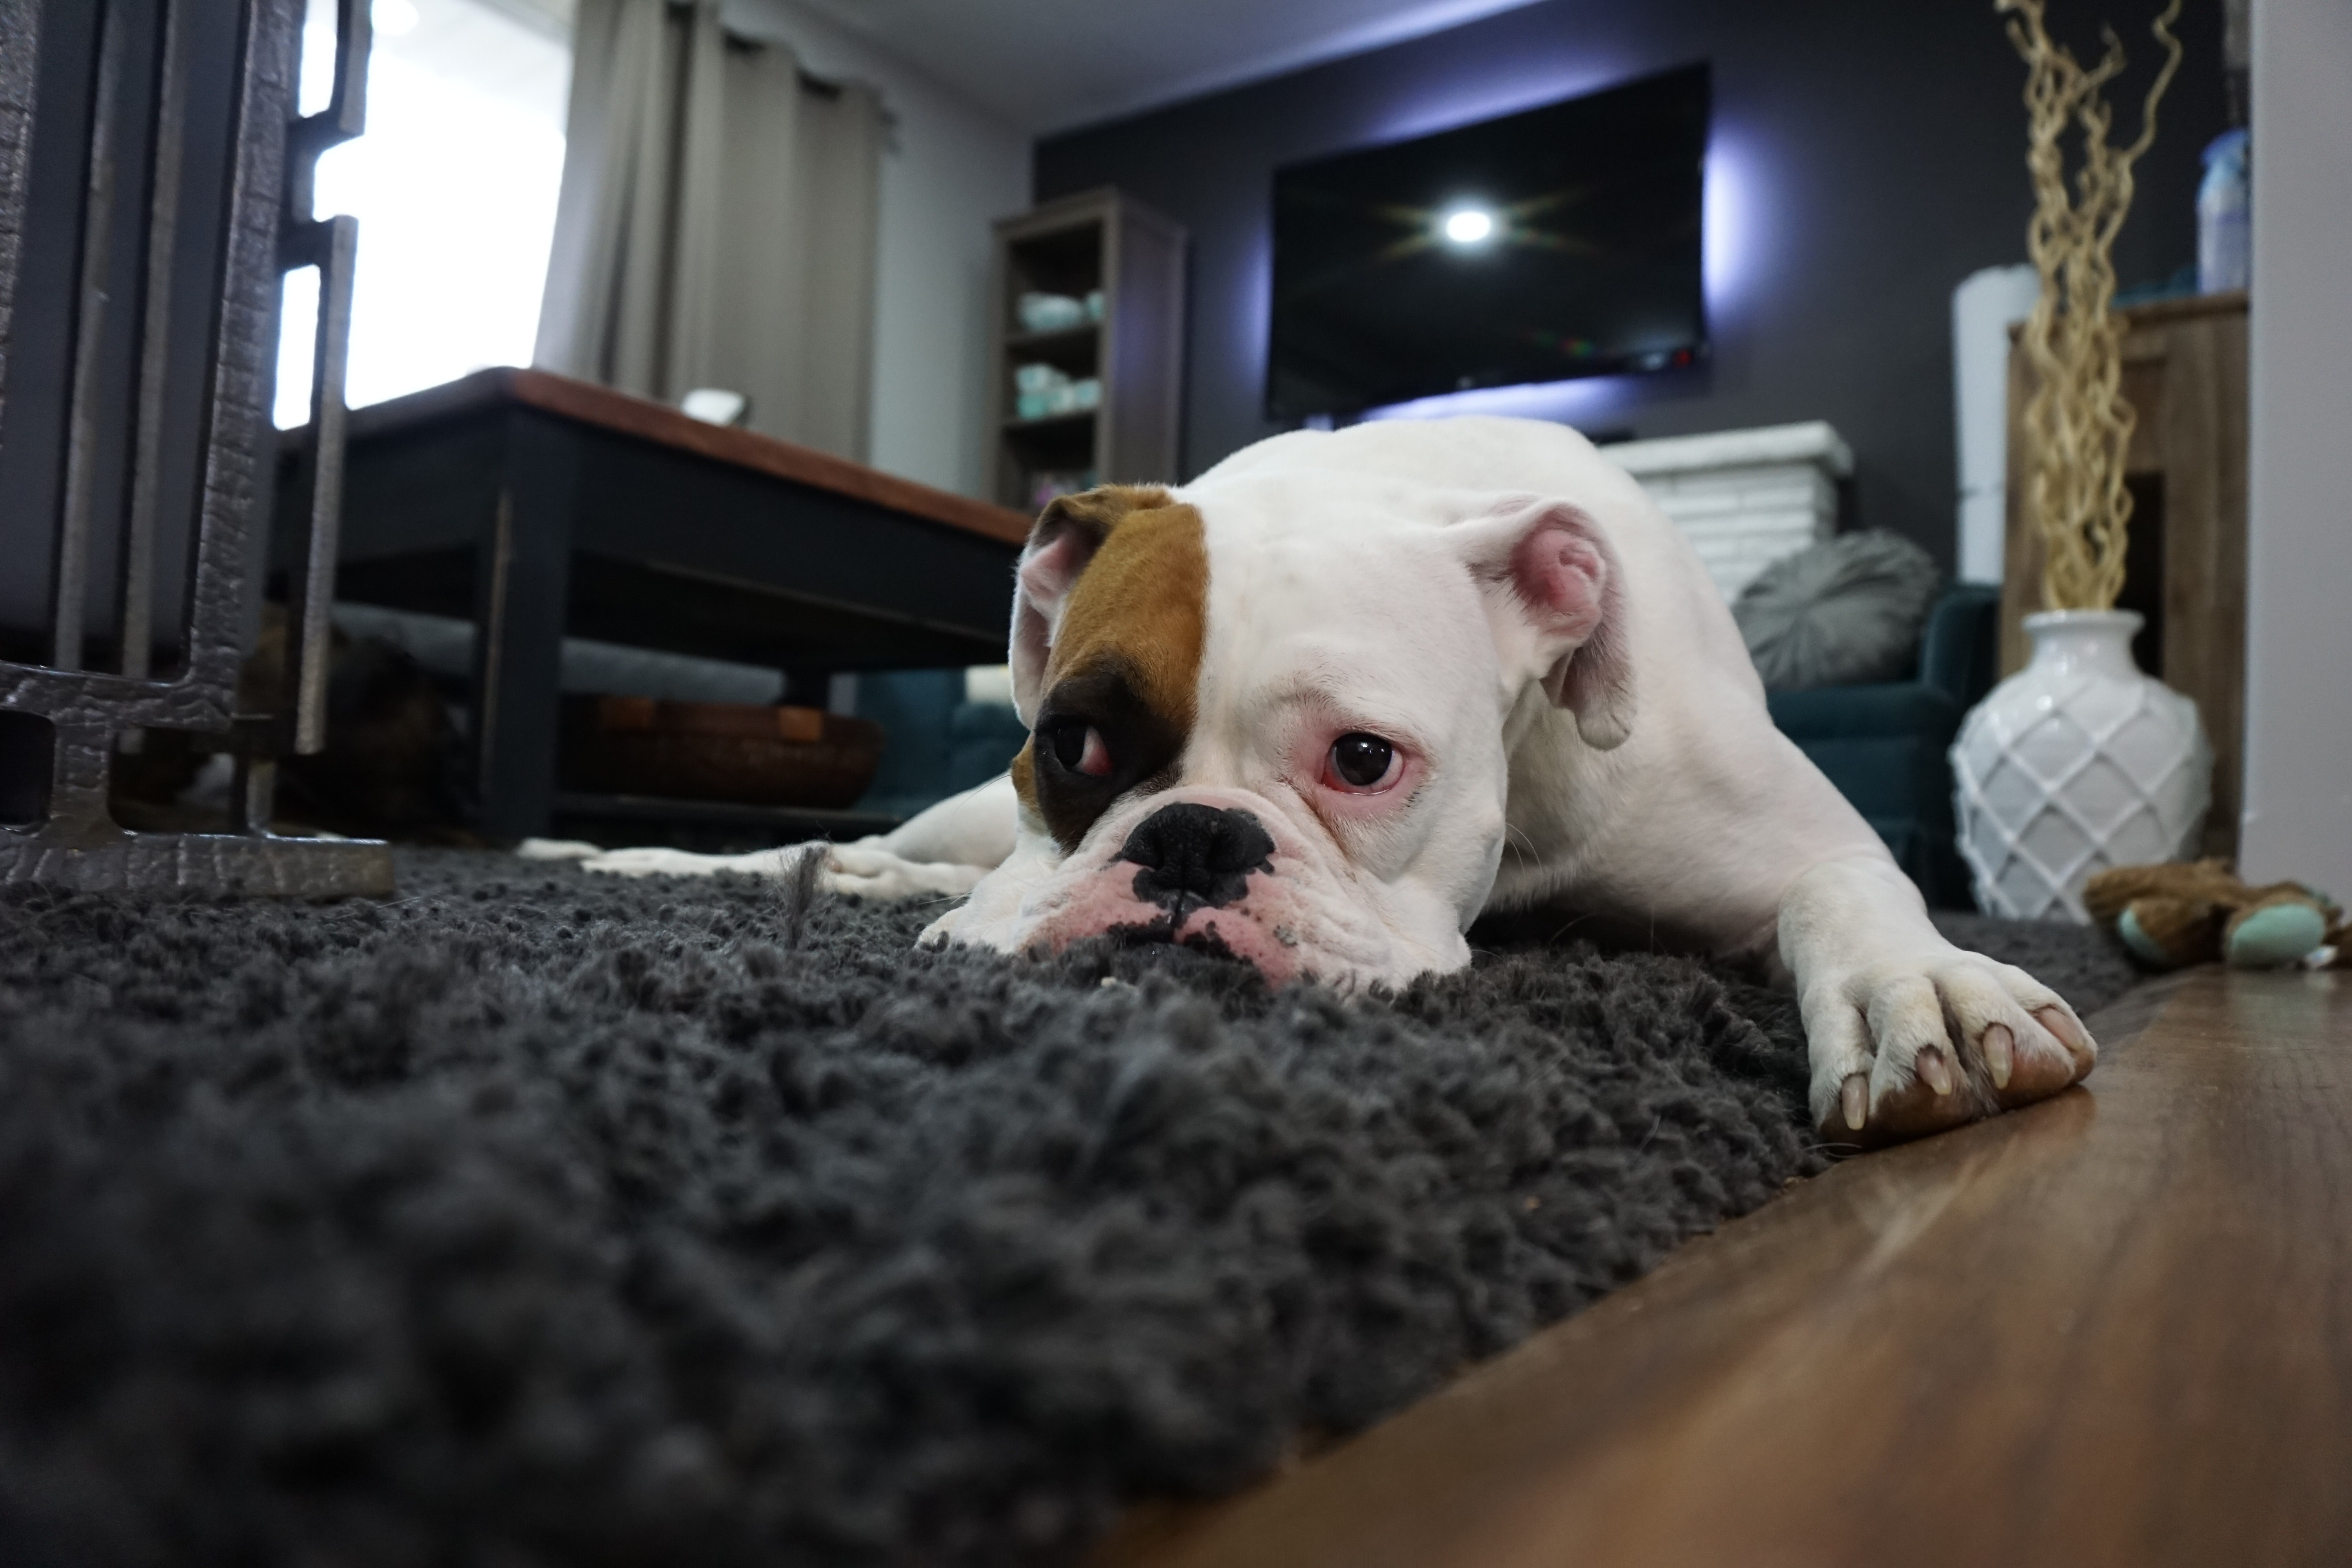 Bored Pooch? Consider Doggy Daycare